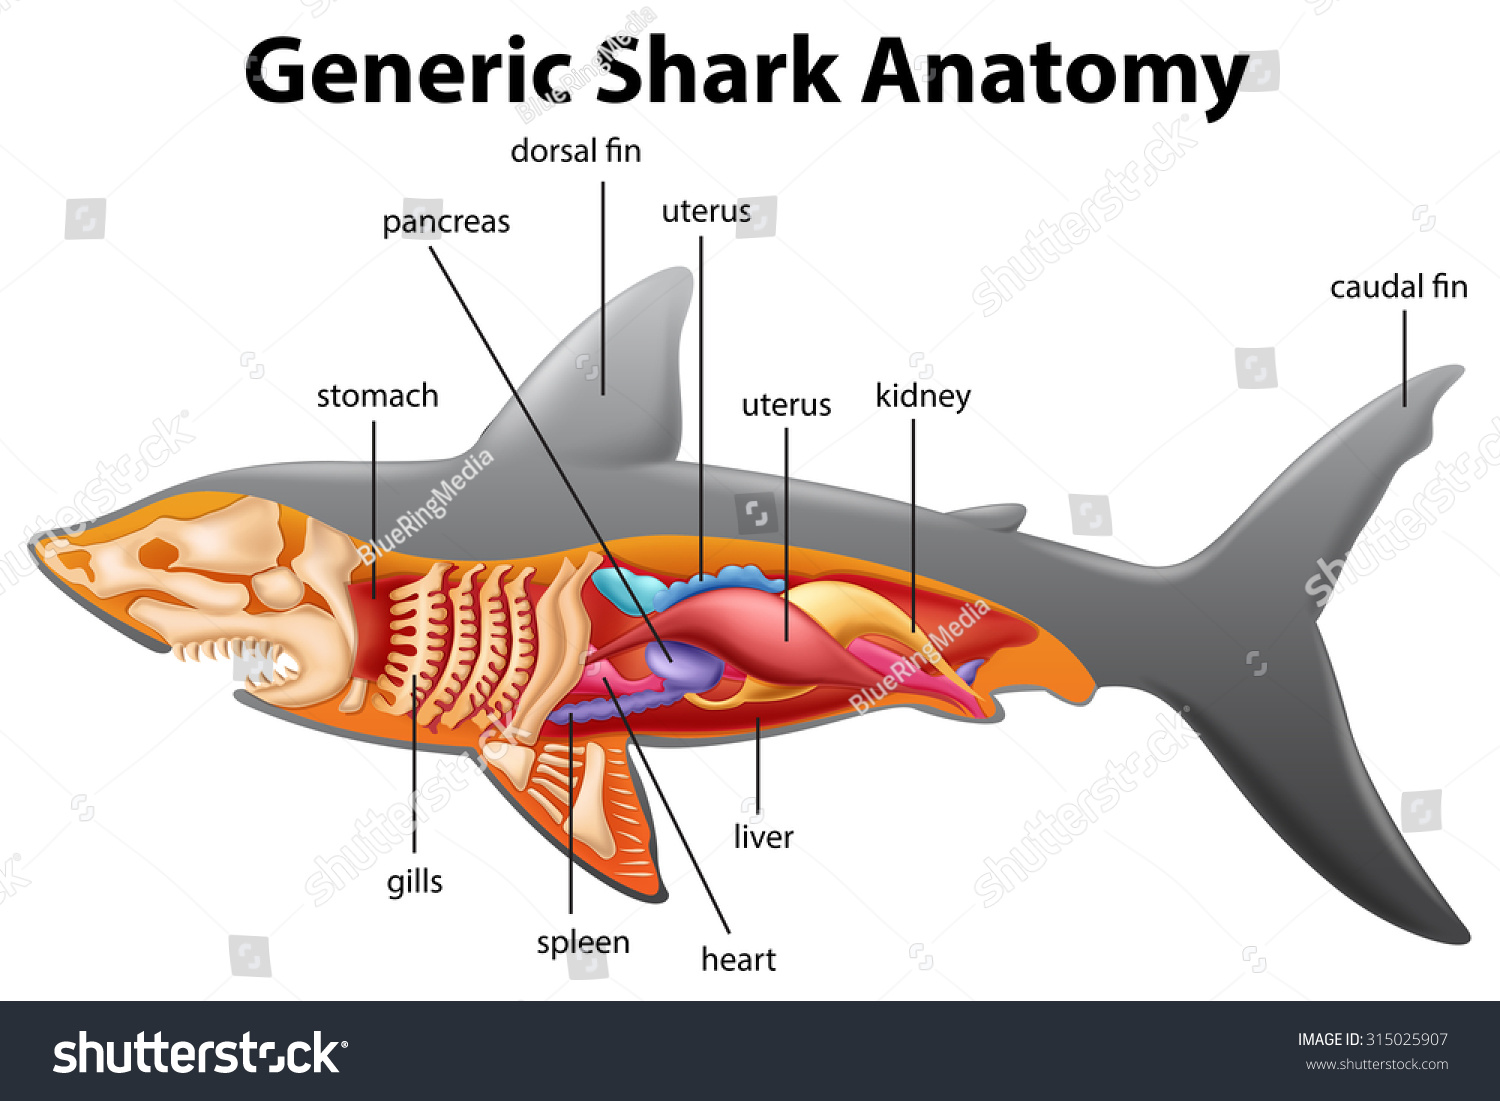 Fish Internal Anatomy Diagram Pancreas - Auto Electrical Wiring ...